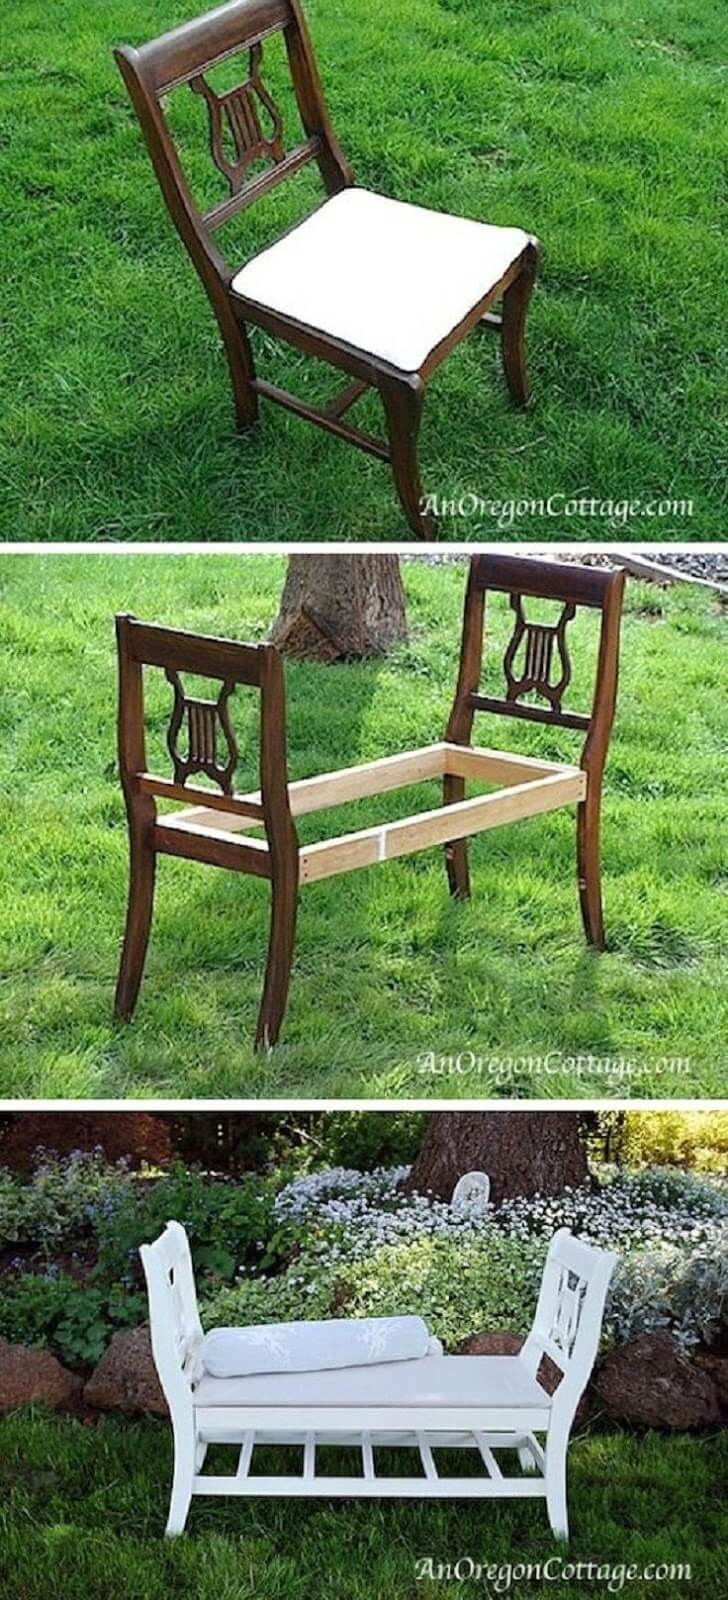 Two Chairs to Create a Comfy Bench